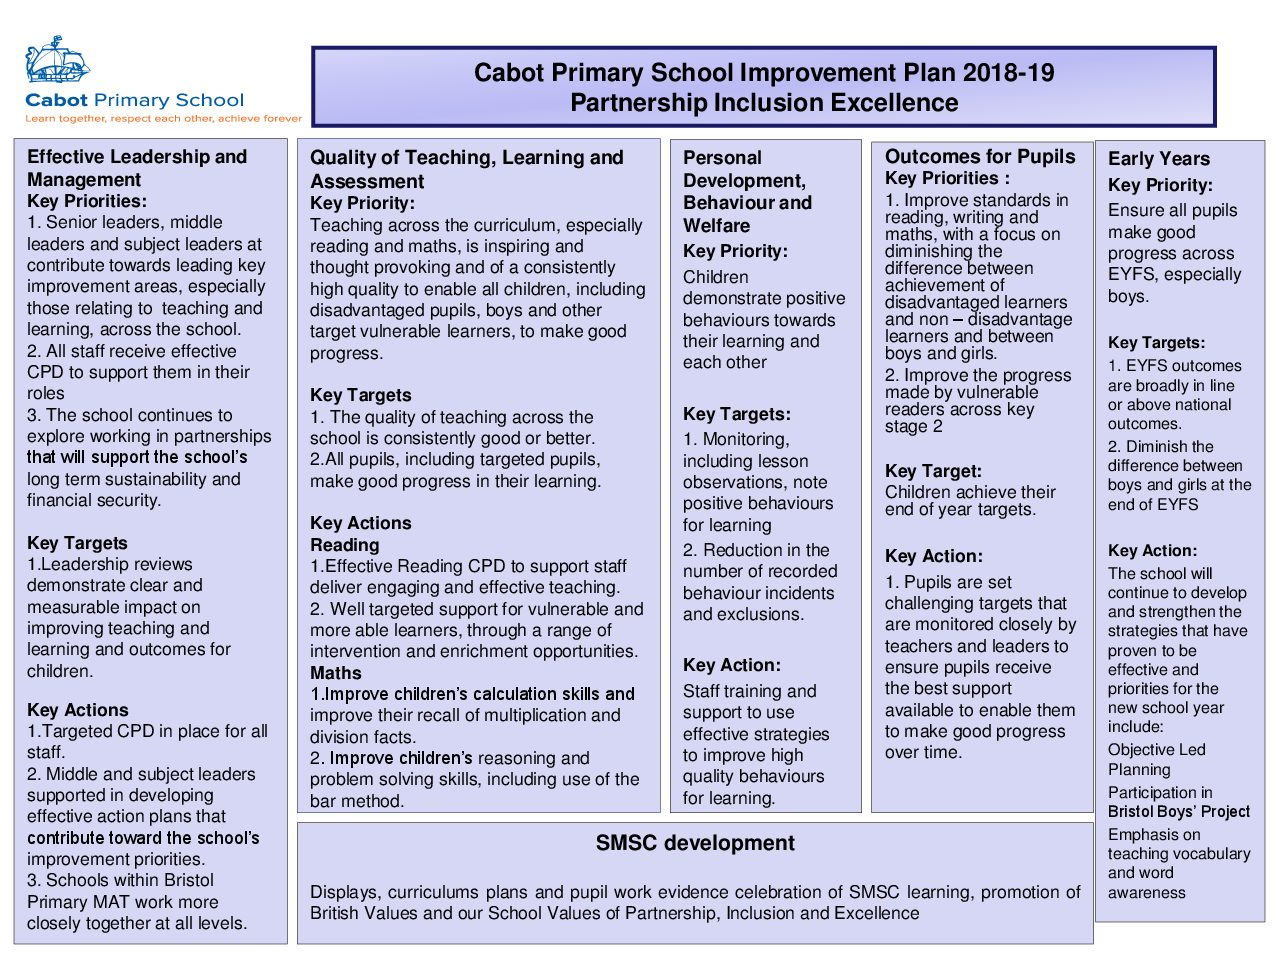 School Improvement Plan 2018-19 | Cabot Primary School